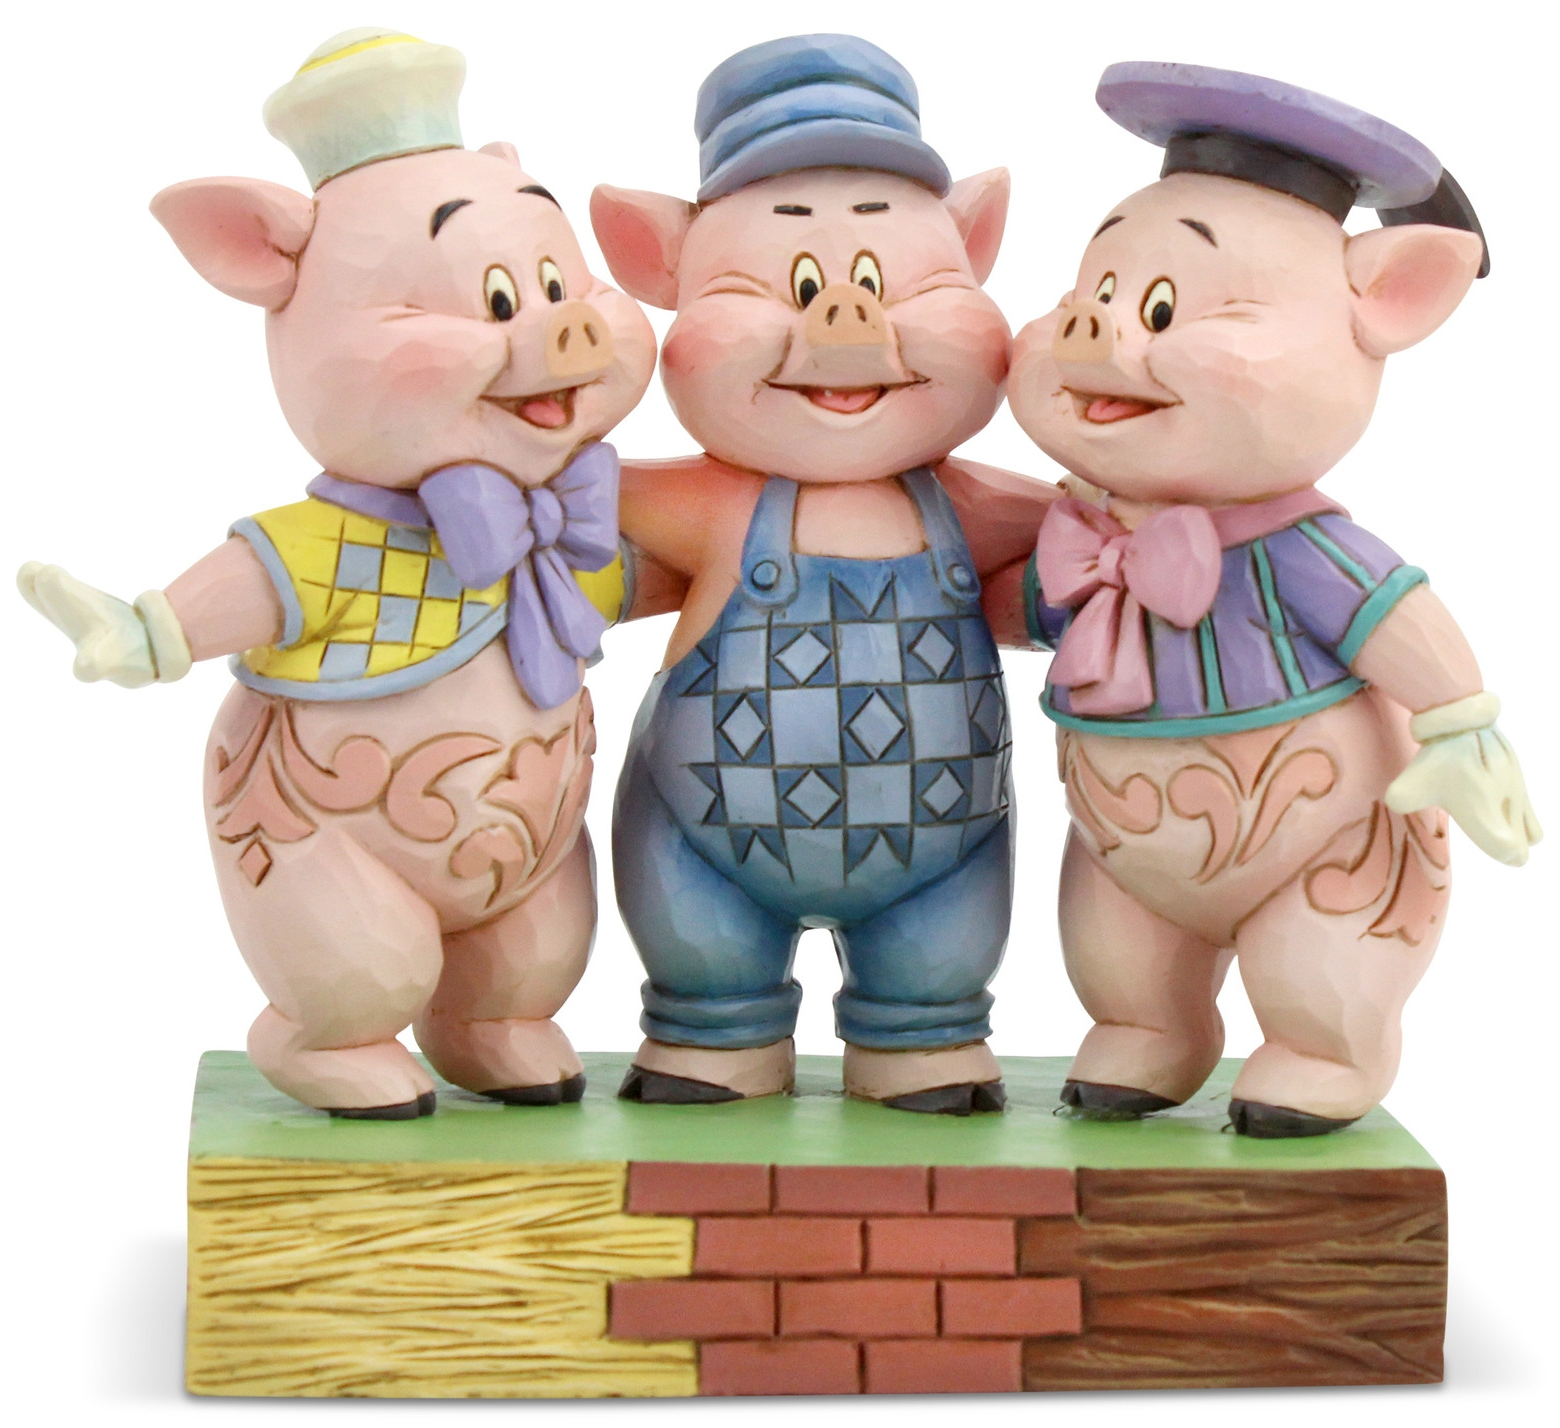 Disney Traditions by Jim Shore 6005974 Three Little Pigs Figurine